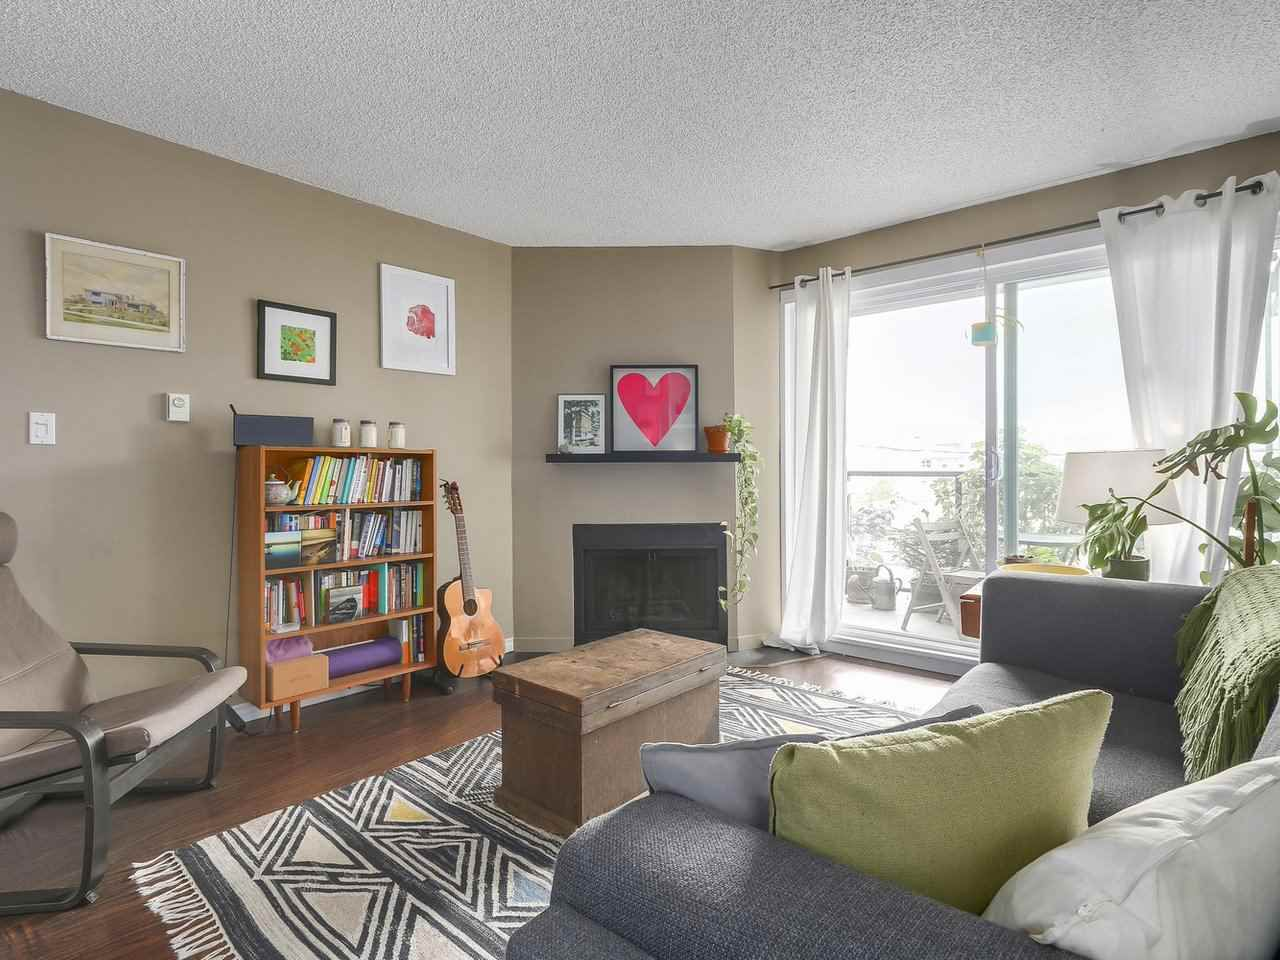 Main Photo: 202 111 W 10TH Avenue in Vancouver: Mount Pleasant VW Condo for sale (Vancouver West)  : MLS®# R2208429